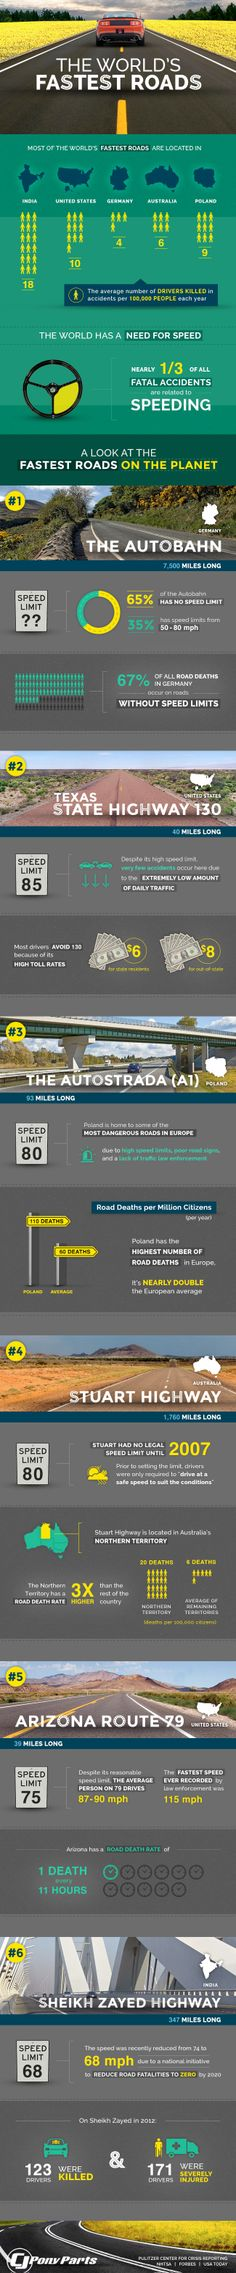 The World's Fastest Roads #FastestRoads #Accidents | #infographics repinned by @Piktochart